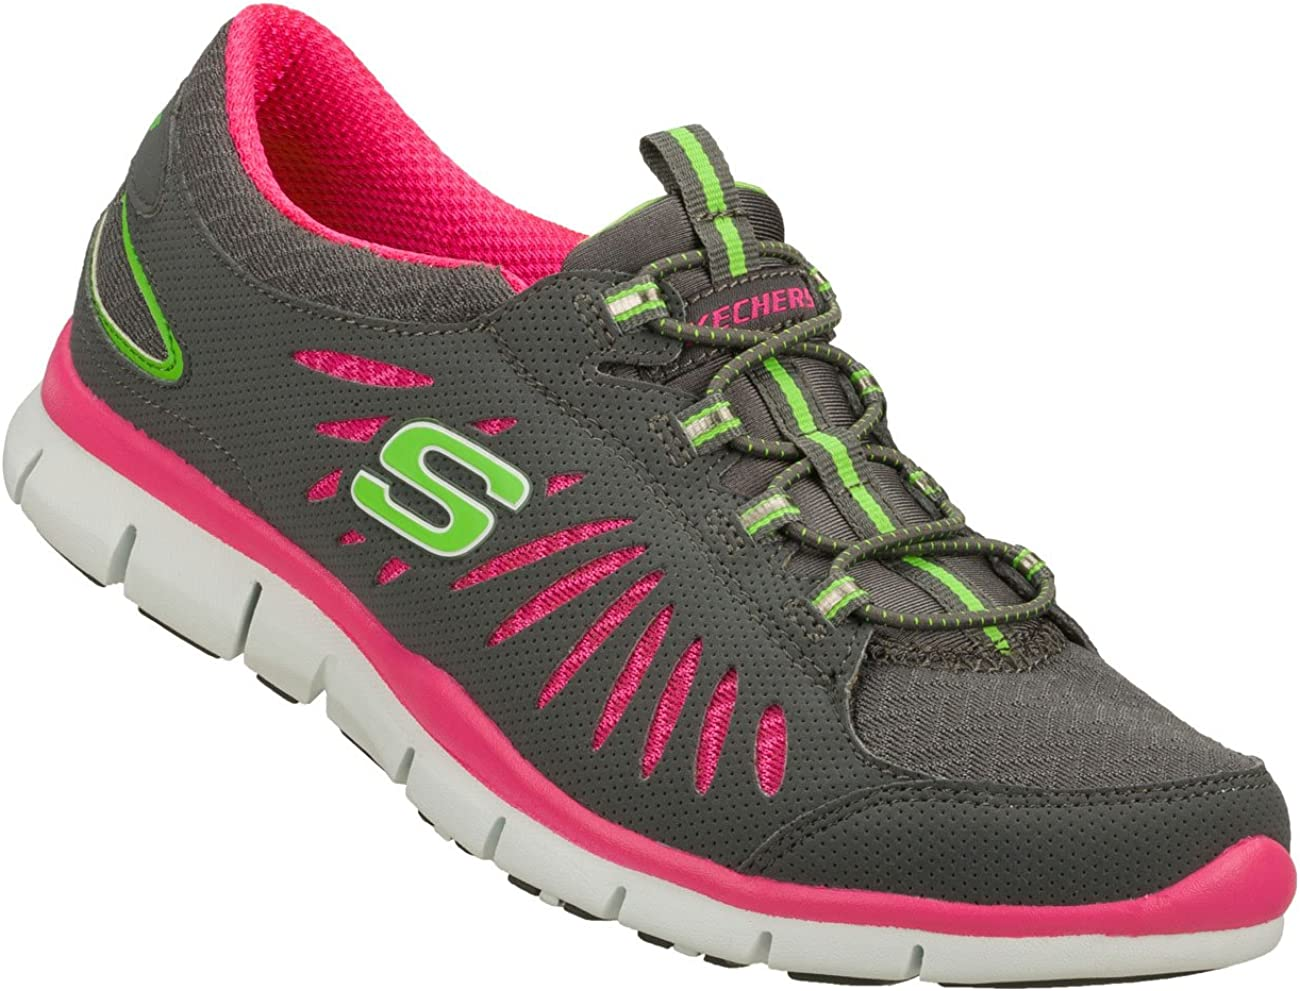 Skechers Gratis Big Idea Damen Sneakers: : Schuhe Egq45